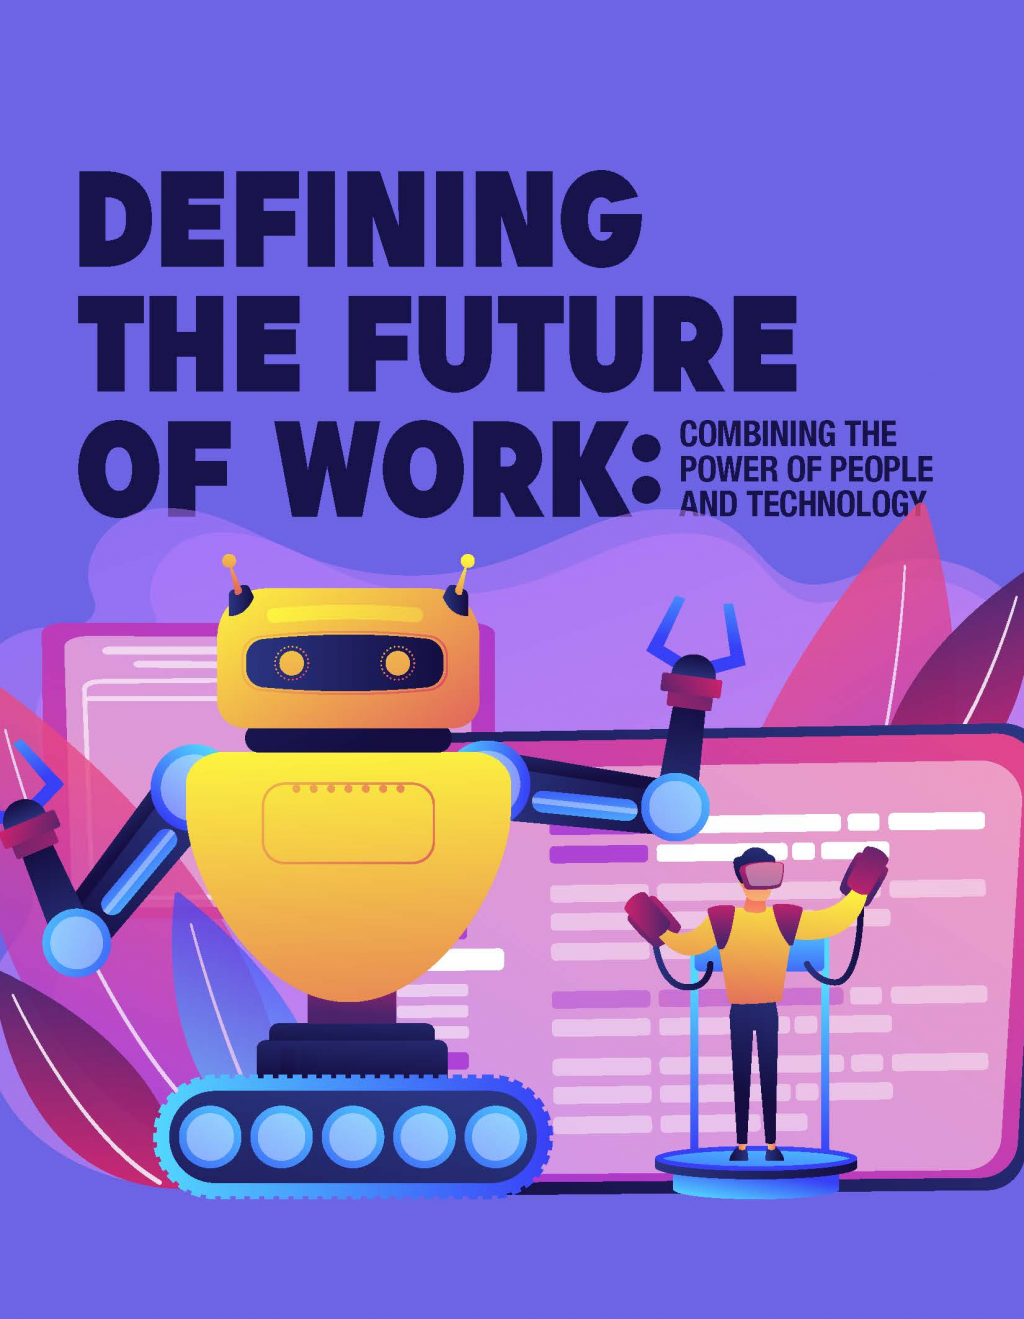 Download the Article - Defining the Future of Work: Combining the Power of People and Technology spex